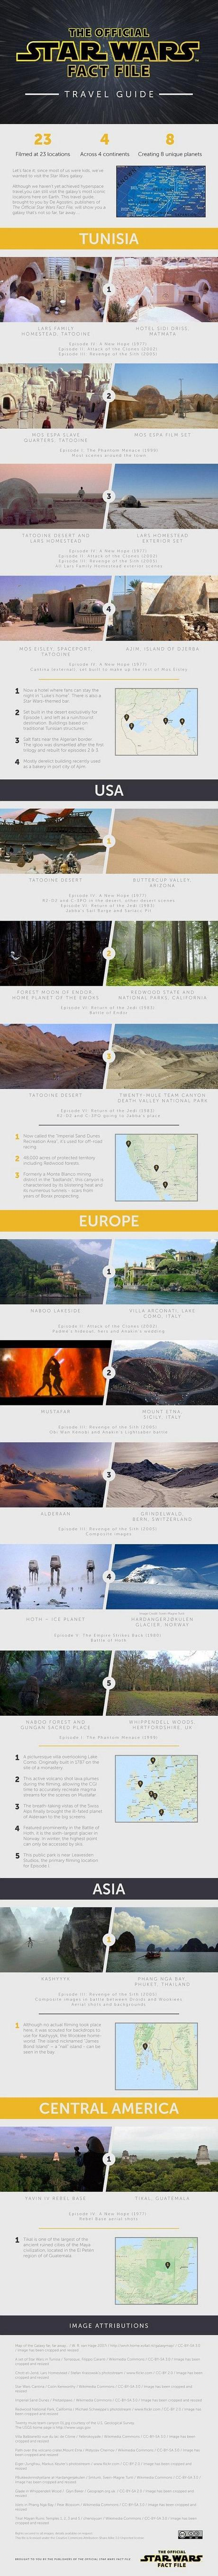 star-wars-locations-infographic